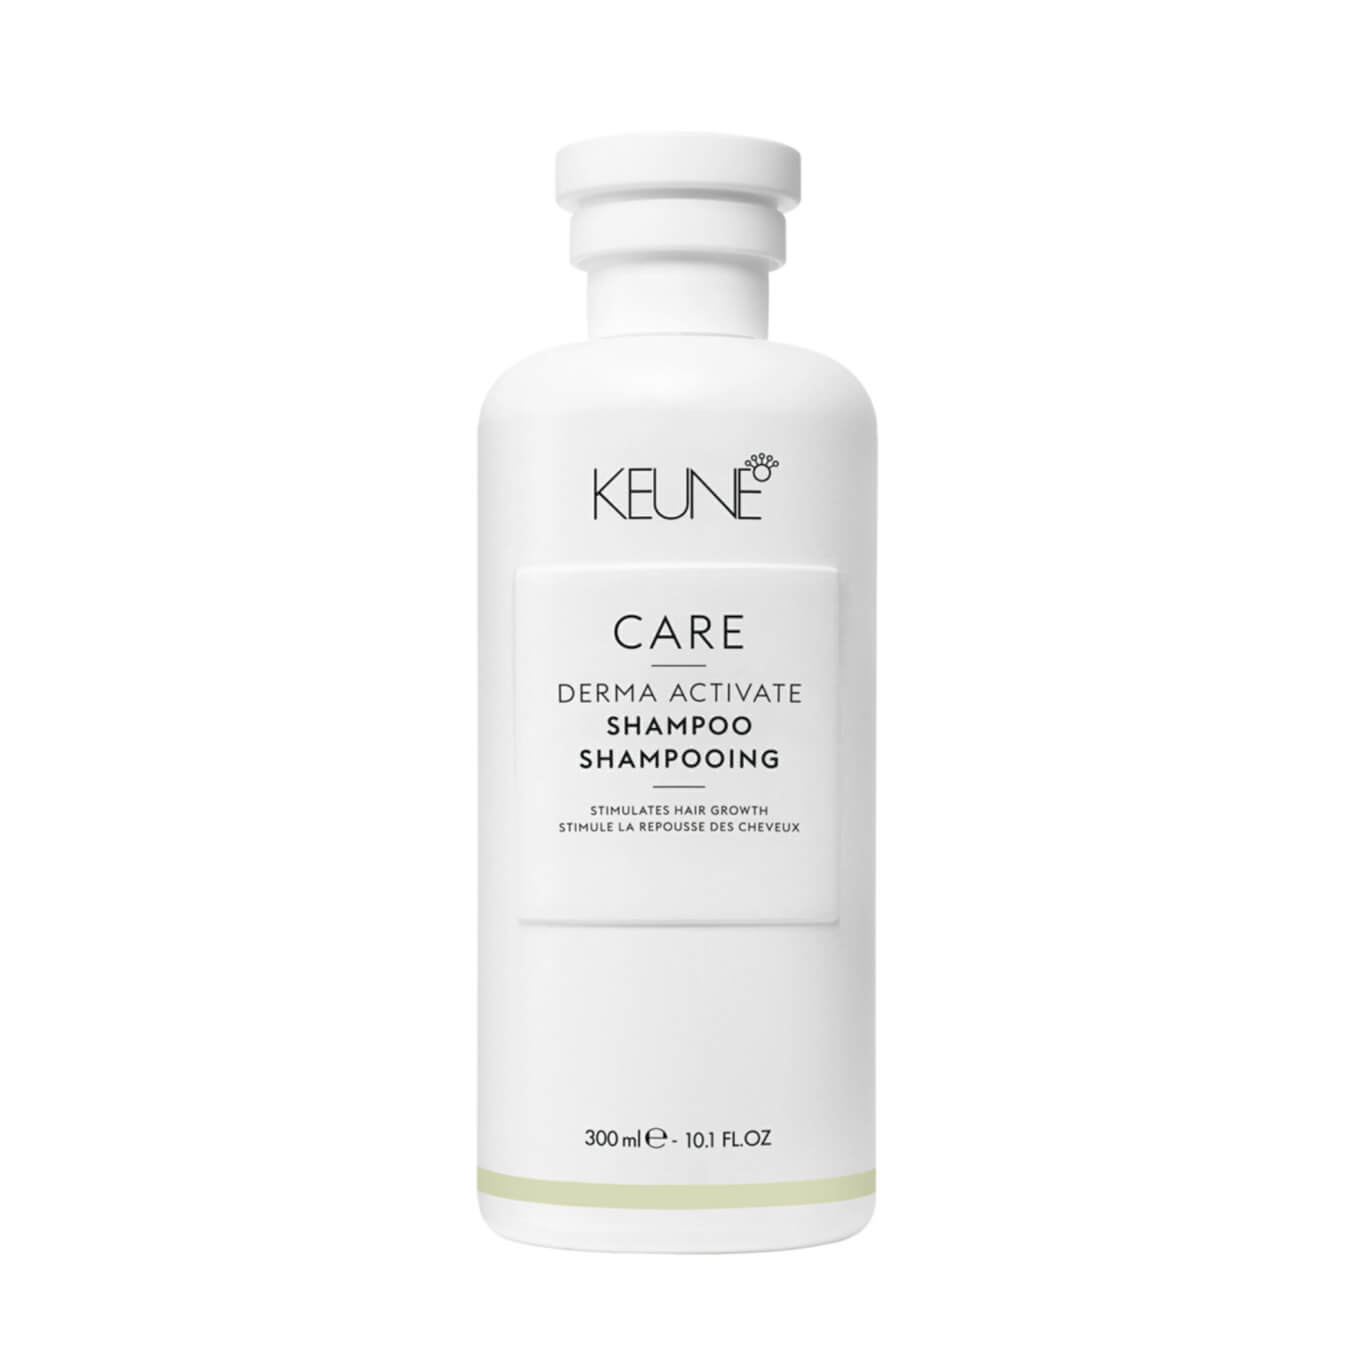 Kauf Keune Care Derma Activate Shampoo 300ml